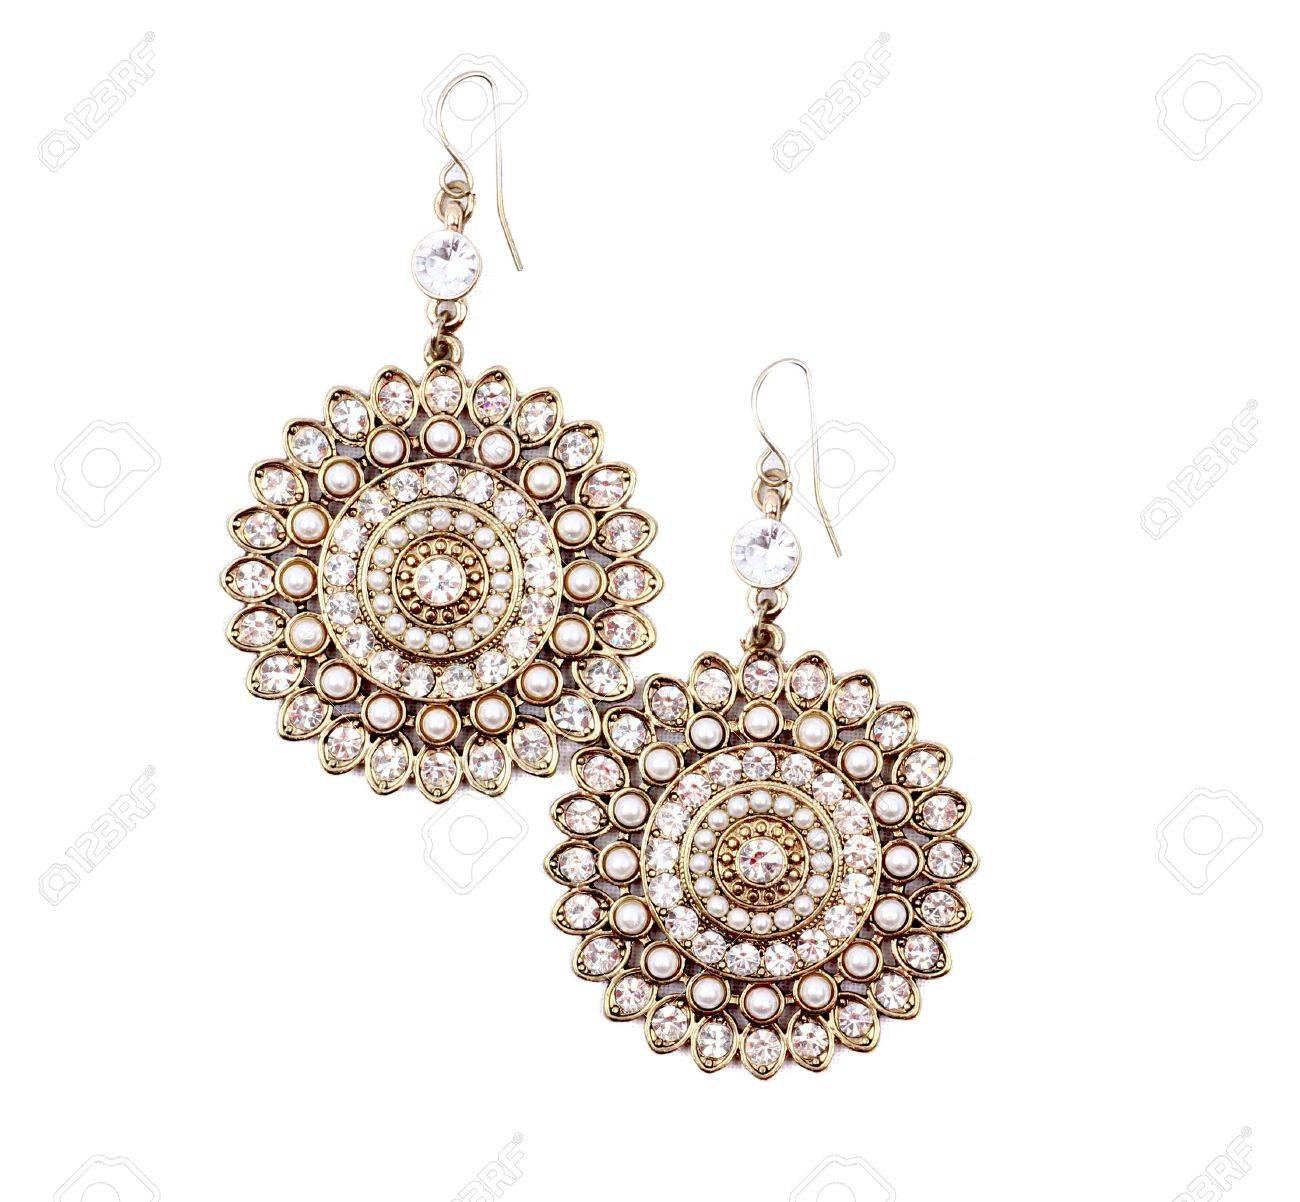 Pair of earrings isolated on the white background. Stock Photo - 10222632